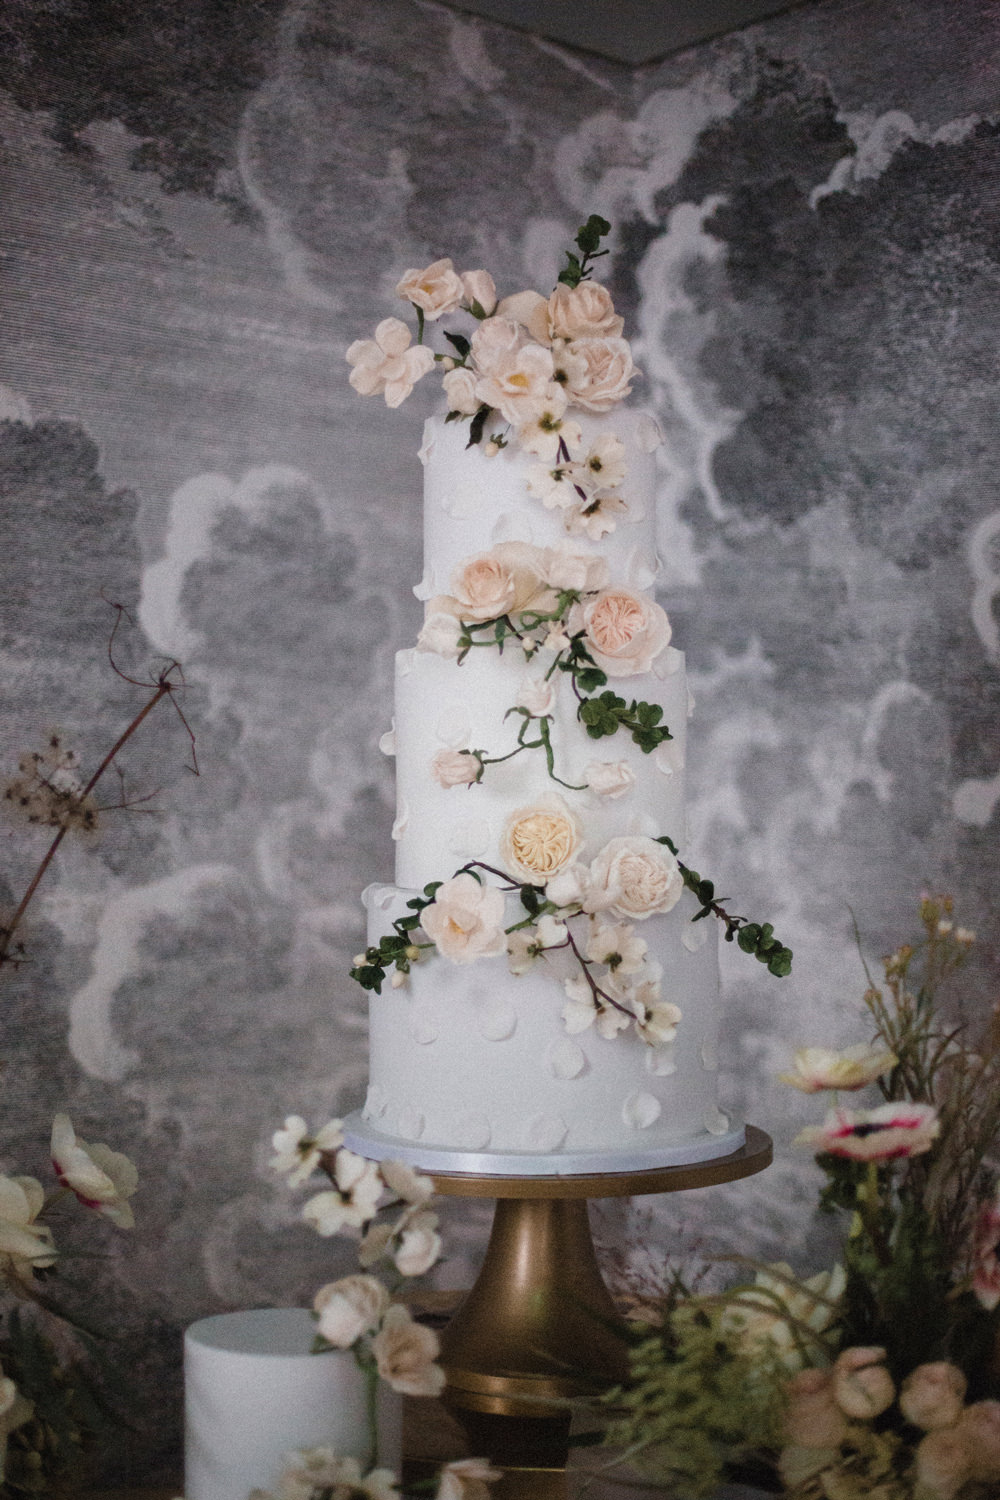 Floral Flower Cake Peach Spring Whimsical Elegant Wedding Ideas Mandorla London